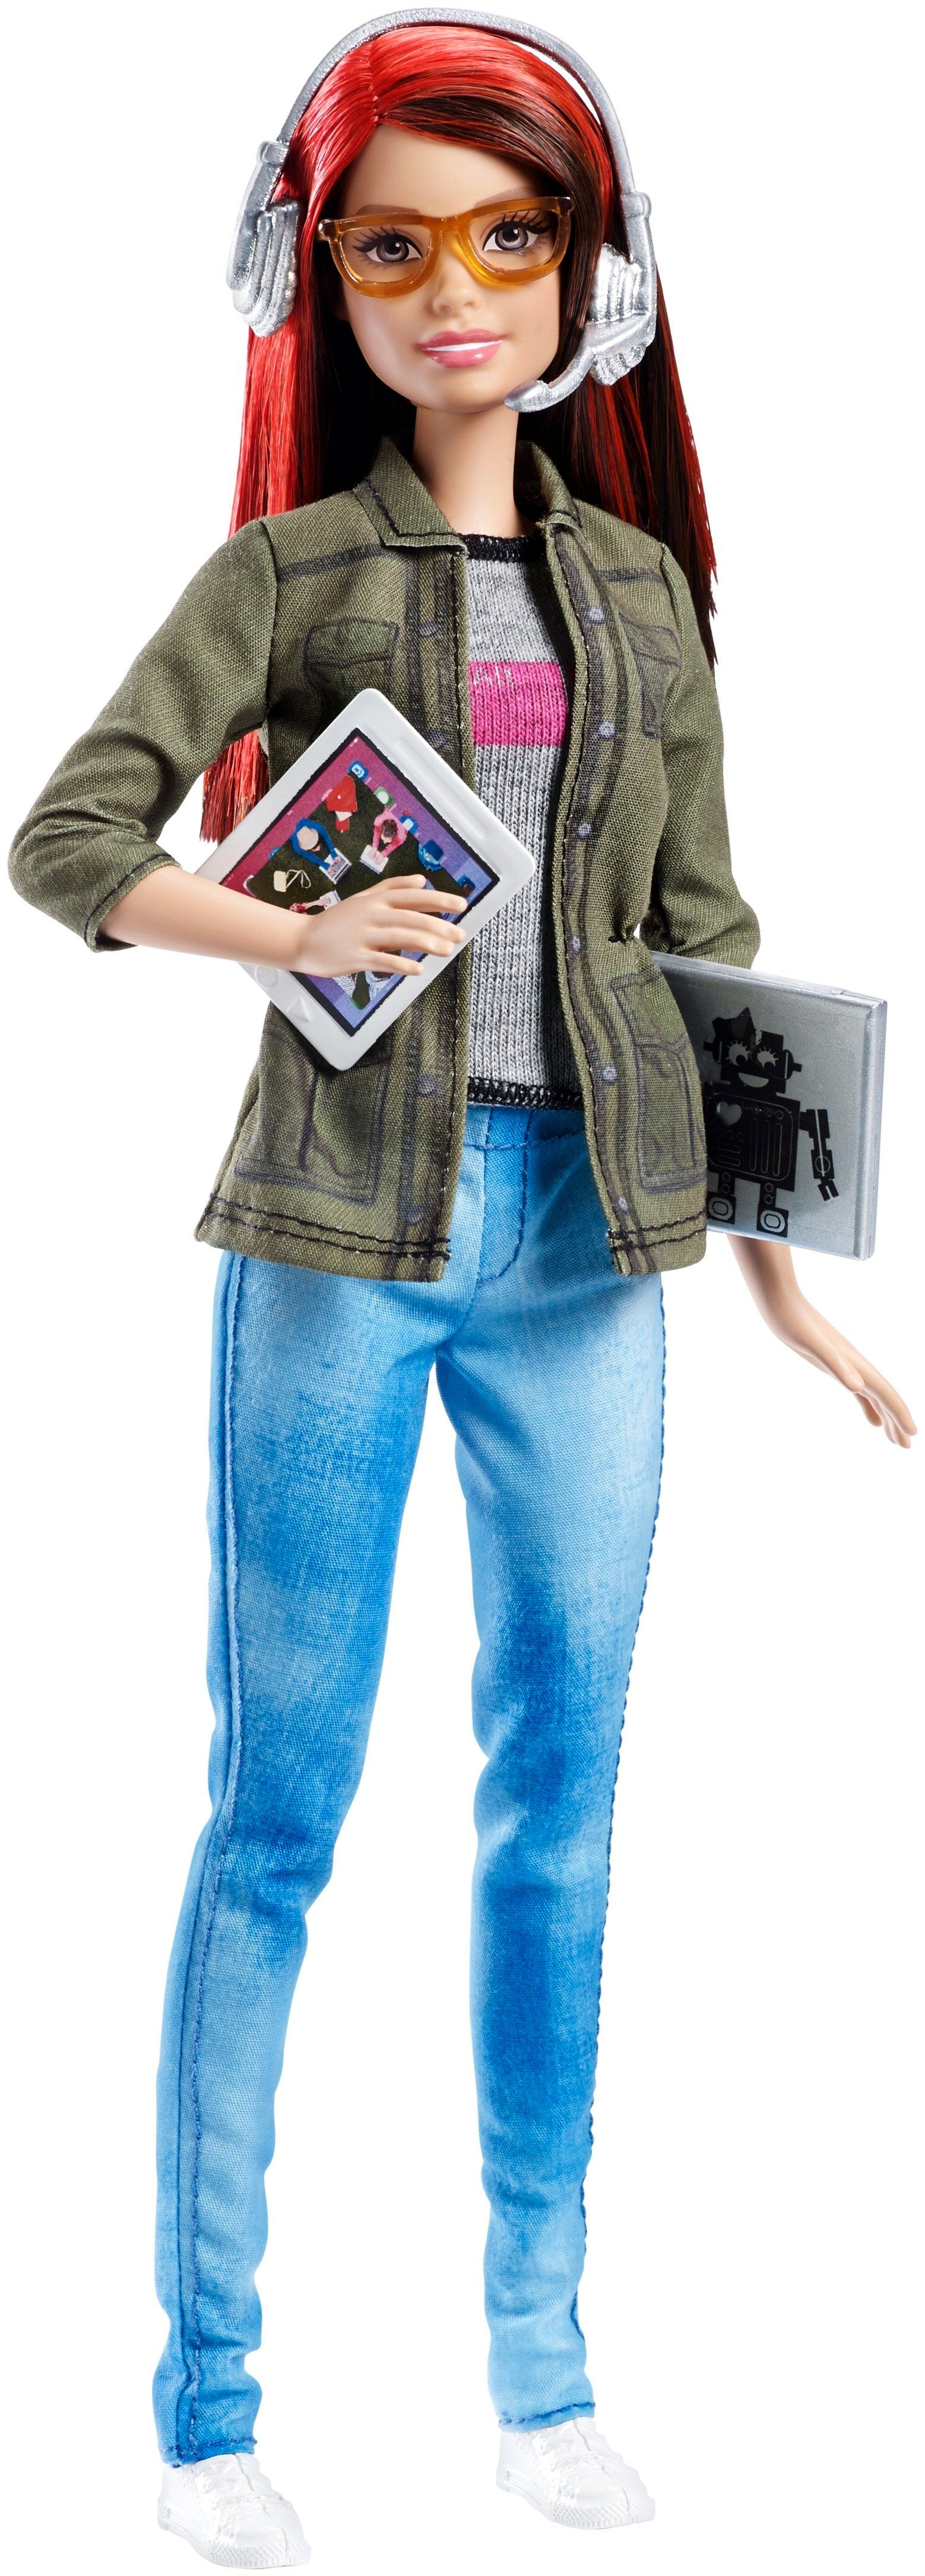 Mattel Finally Nails It With Game Developer